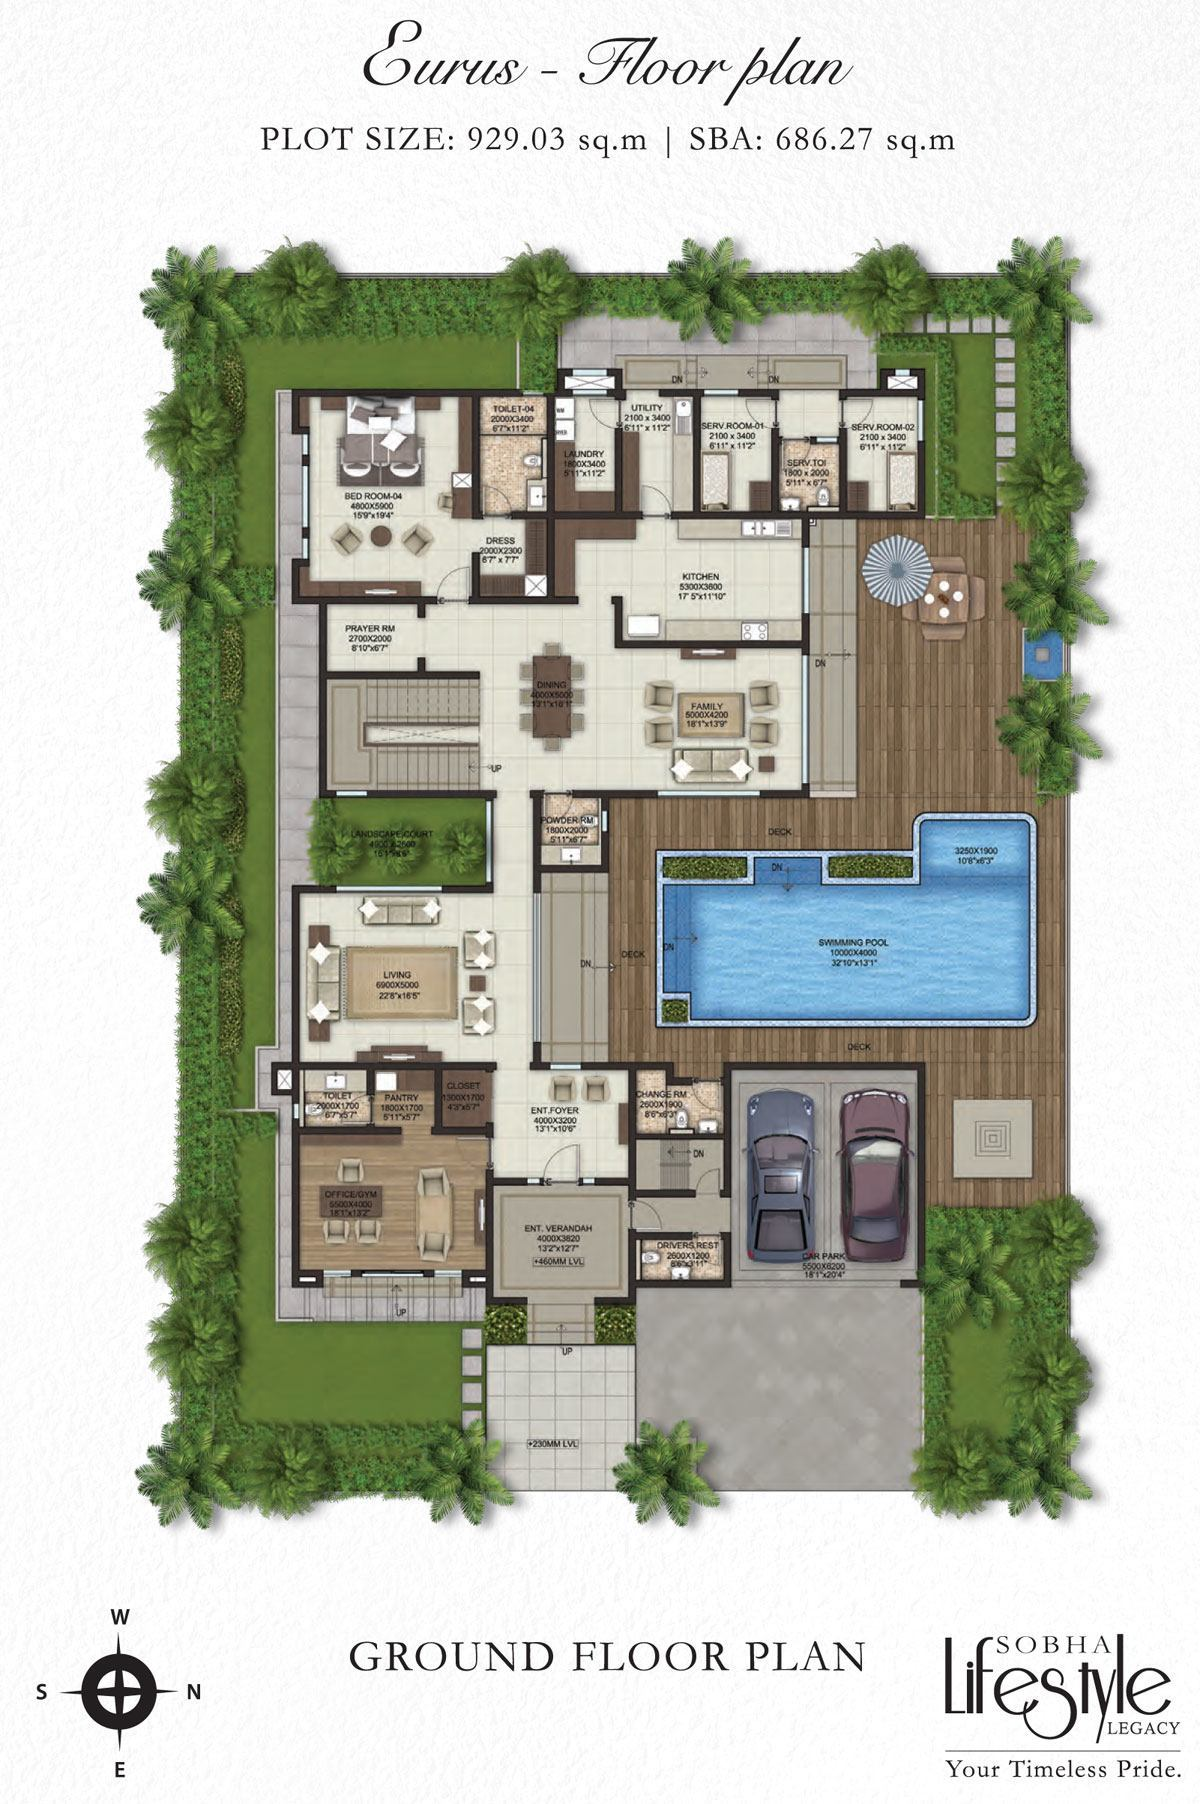 Sobha lifestyle legacy 4 bedroom villas bangalore for Floorplan com